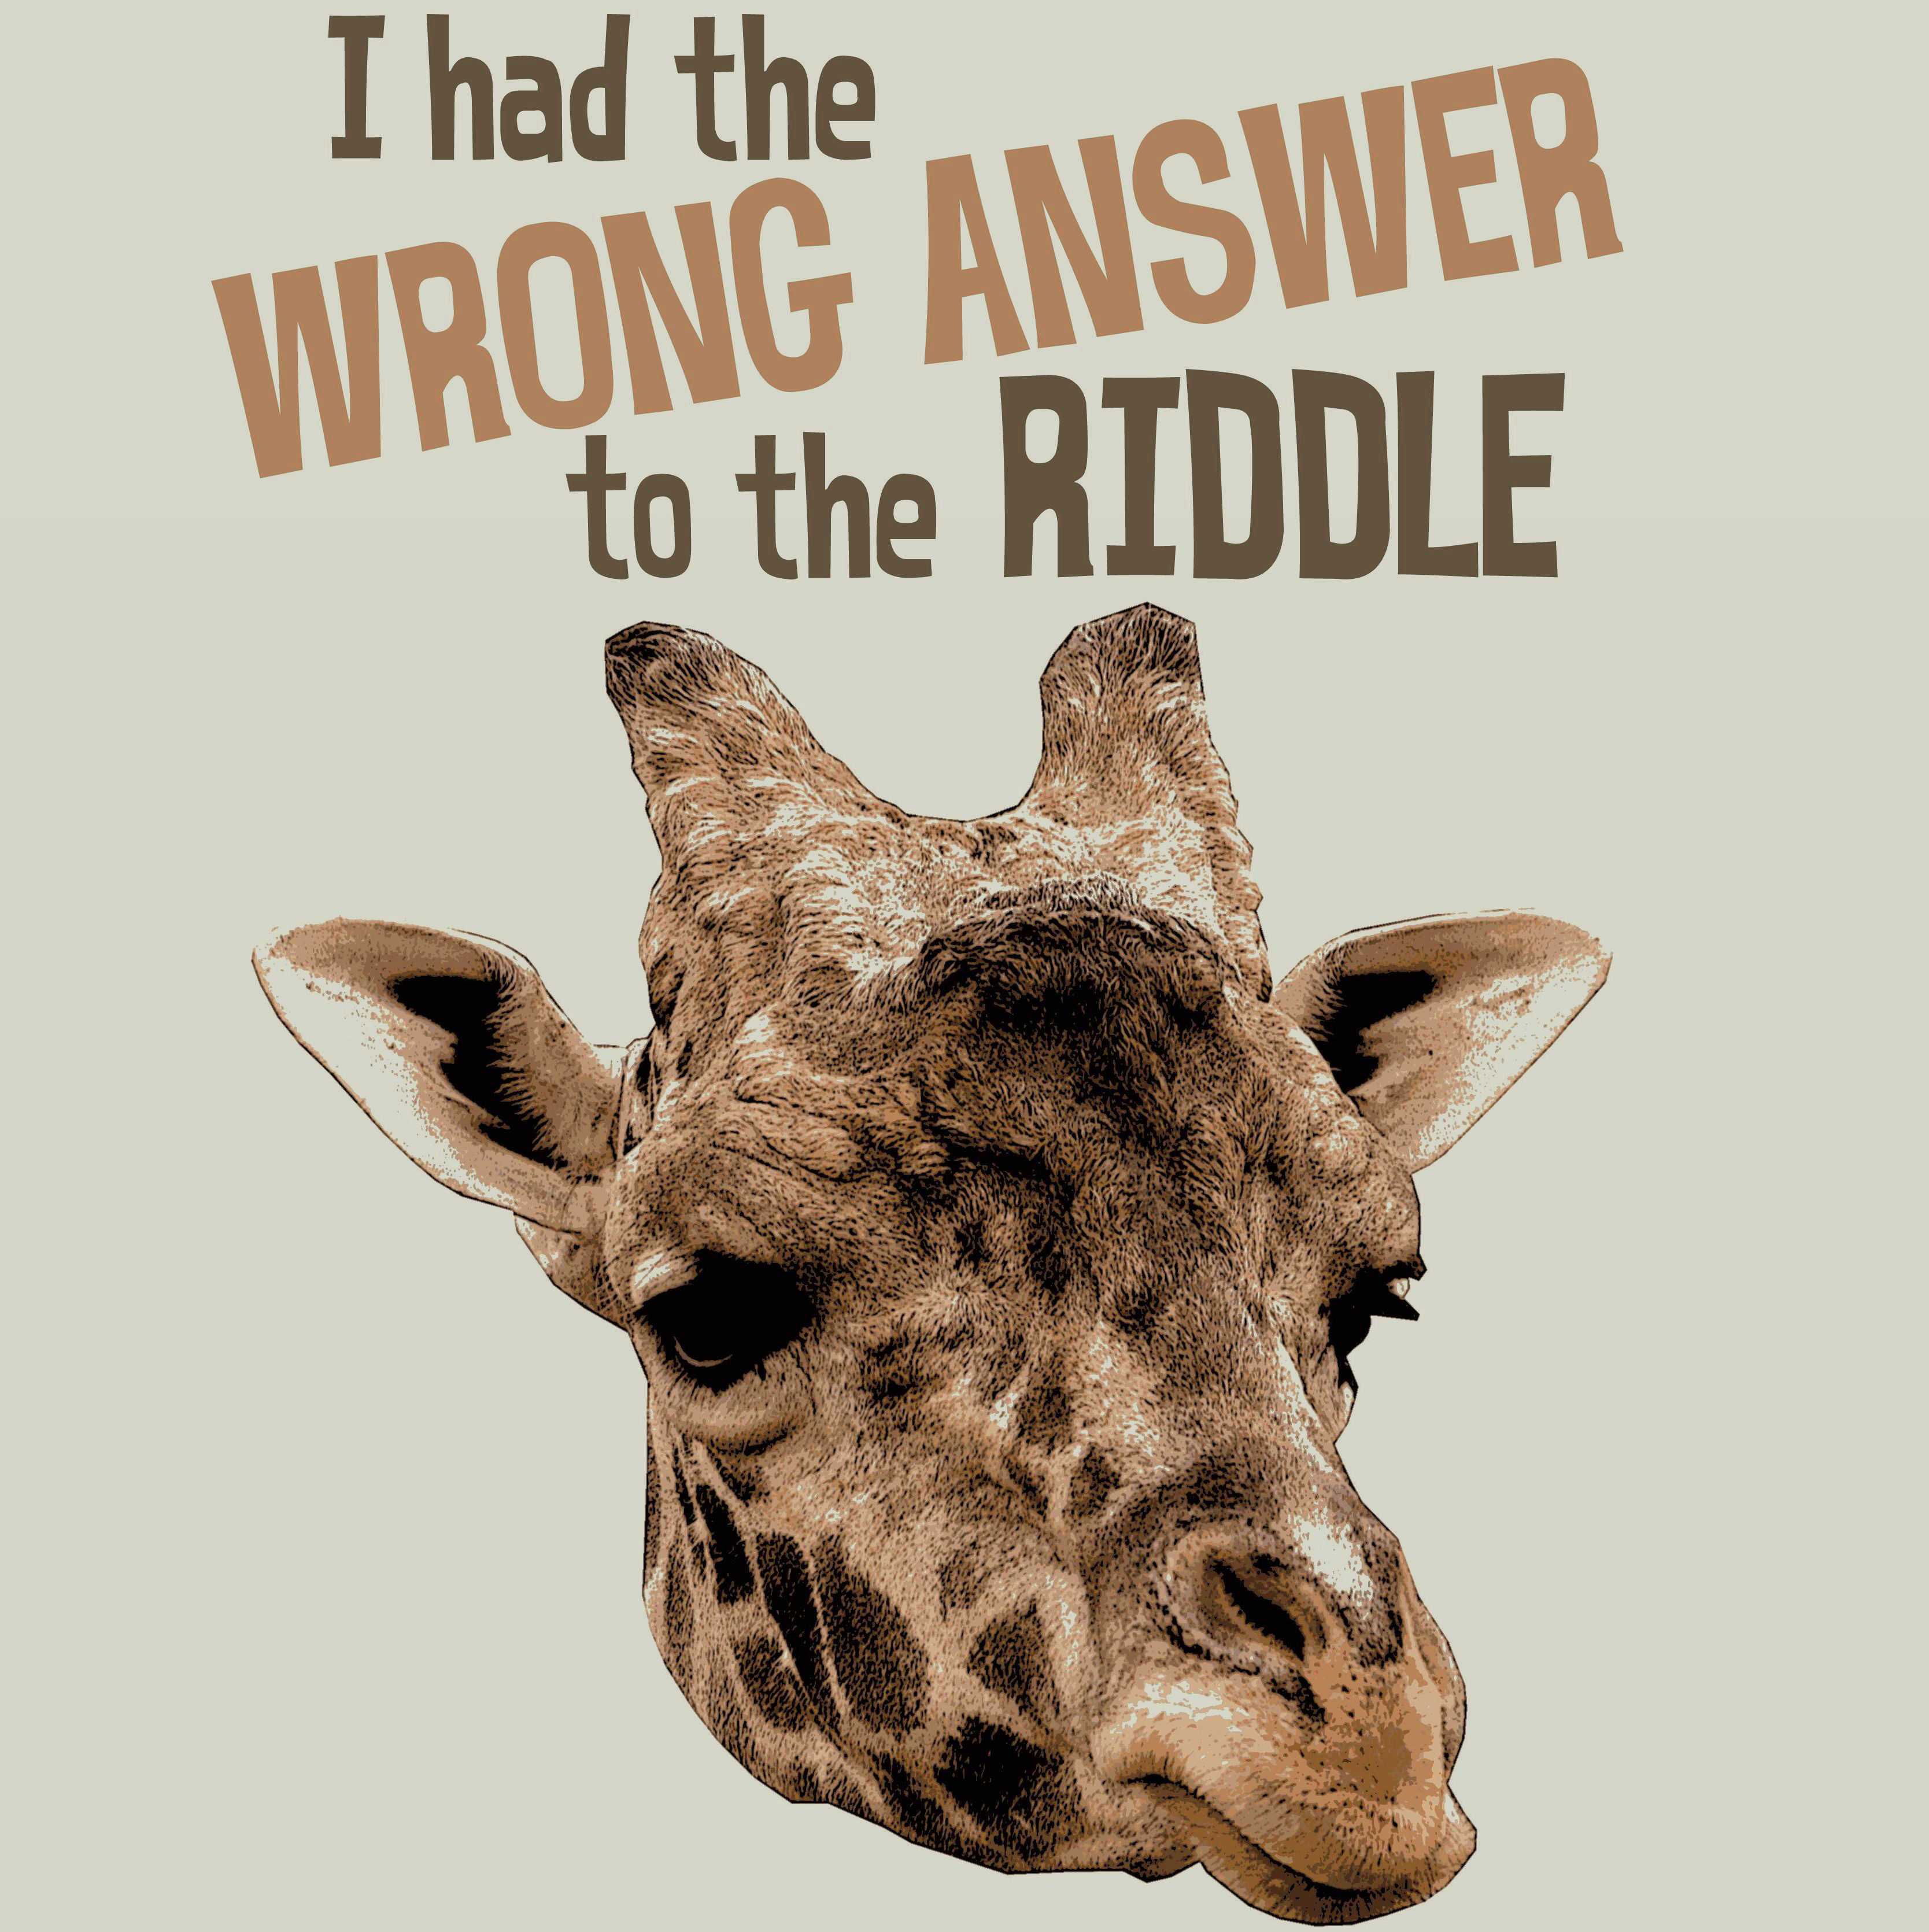 duck giraffe Animal funniesfunny animalszoo animalscute animalsgiraffe memebest  funny picturesfunny imagesfunny stufffunny things more information saved  by.